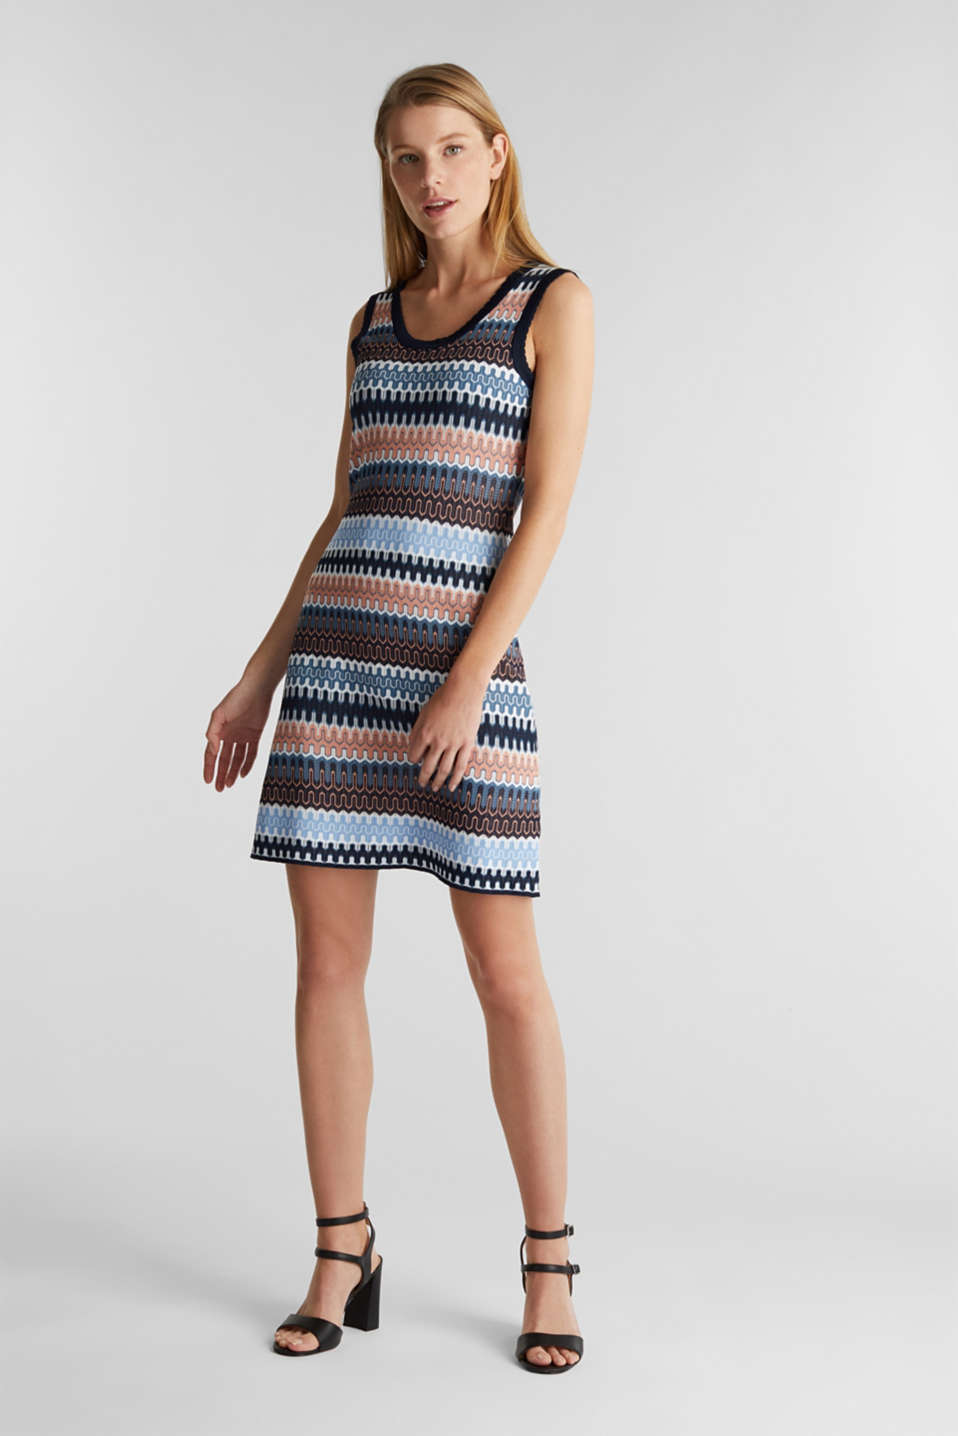 Esprit - Knit dress with a jacquard pattern